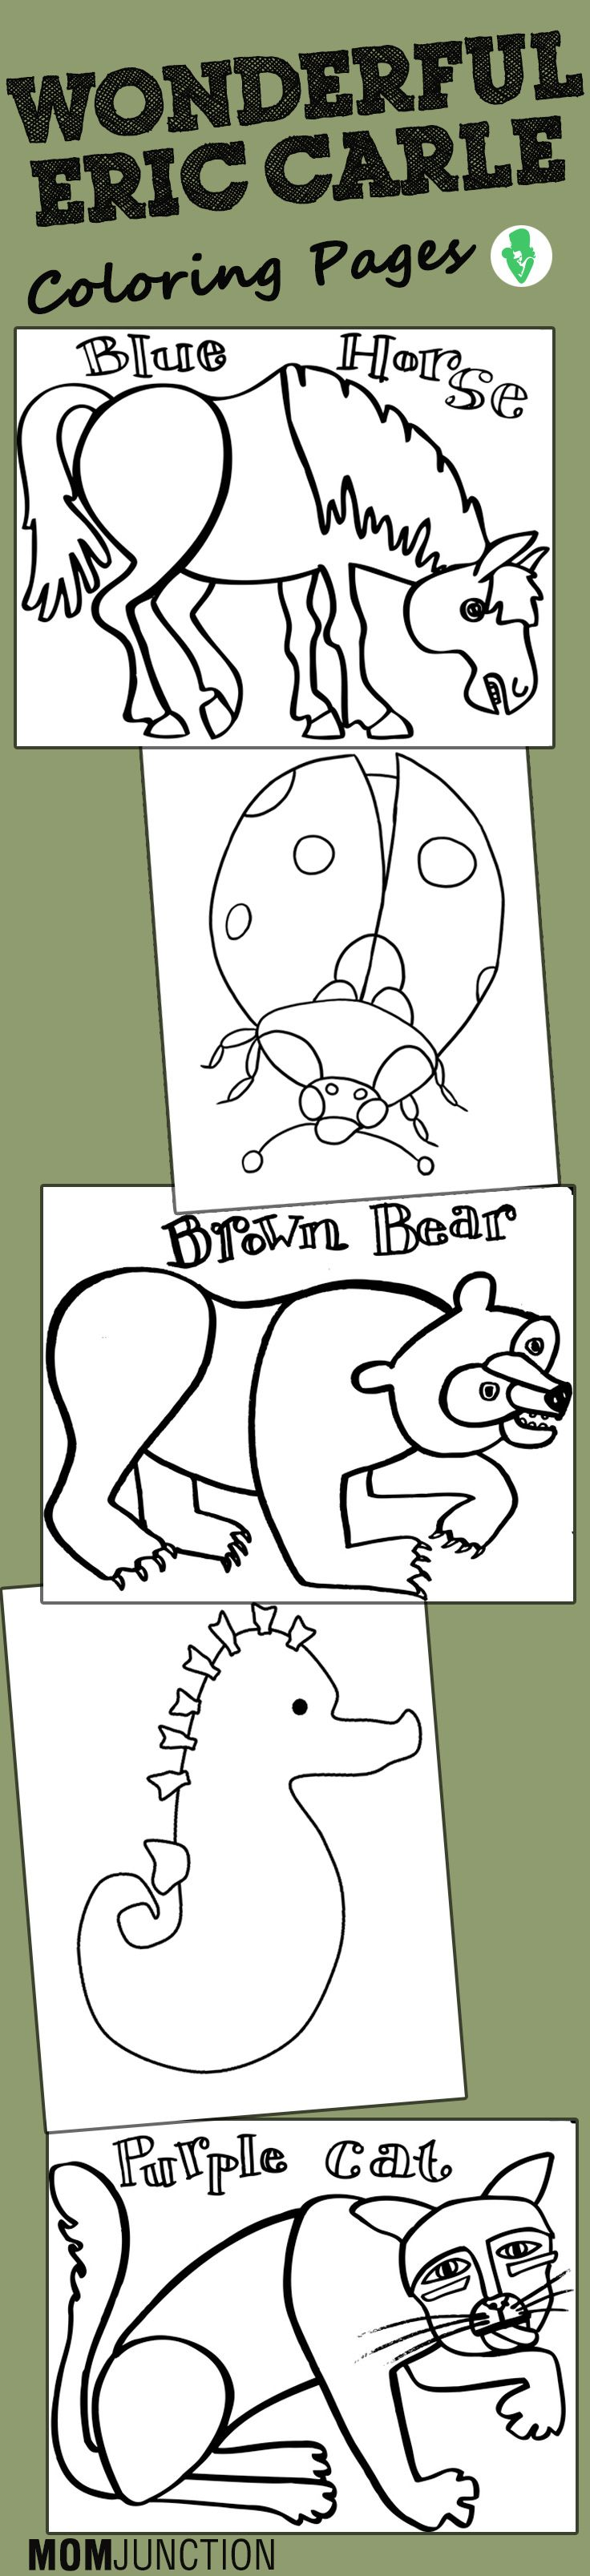 eric carle coloring pages free printables eric carle author